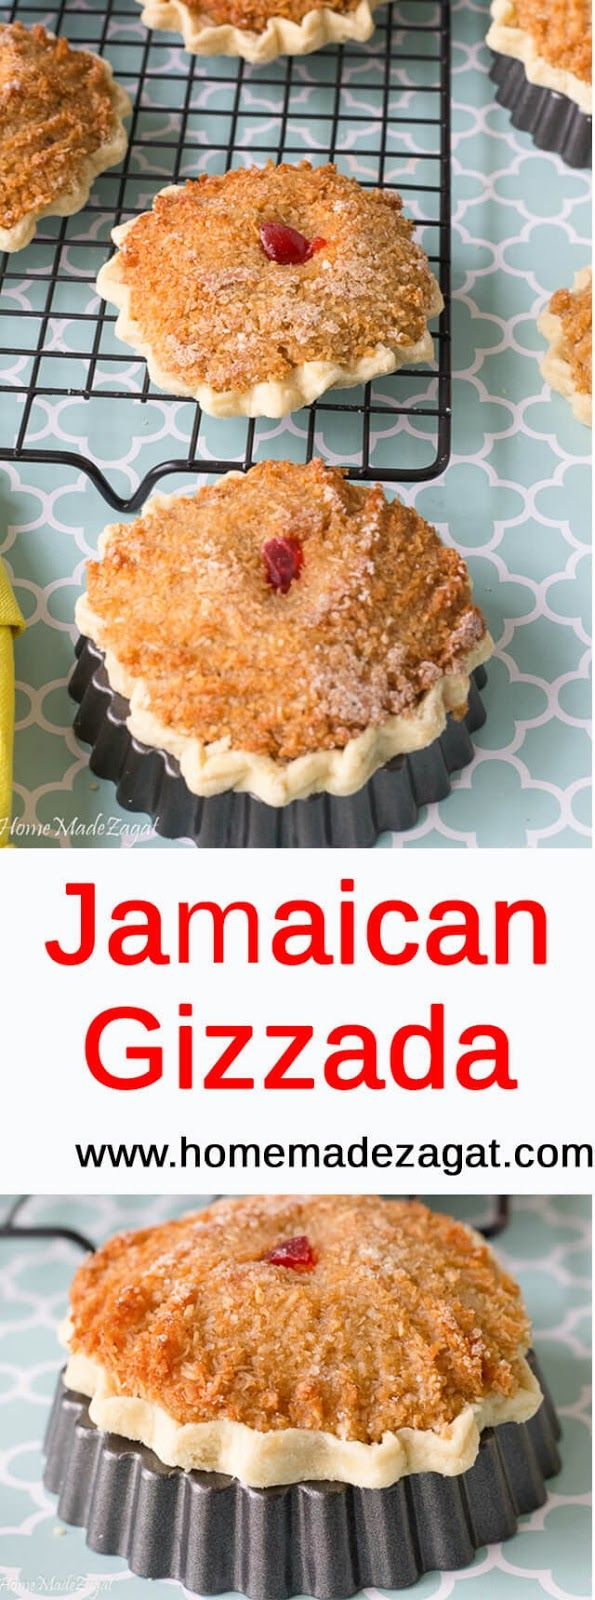 A traditional Jamaican and Portuguese dessert, this coconut pastry snack is an all time open face tart with grated, spiced sweetened coconut.